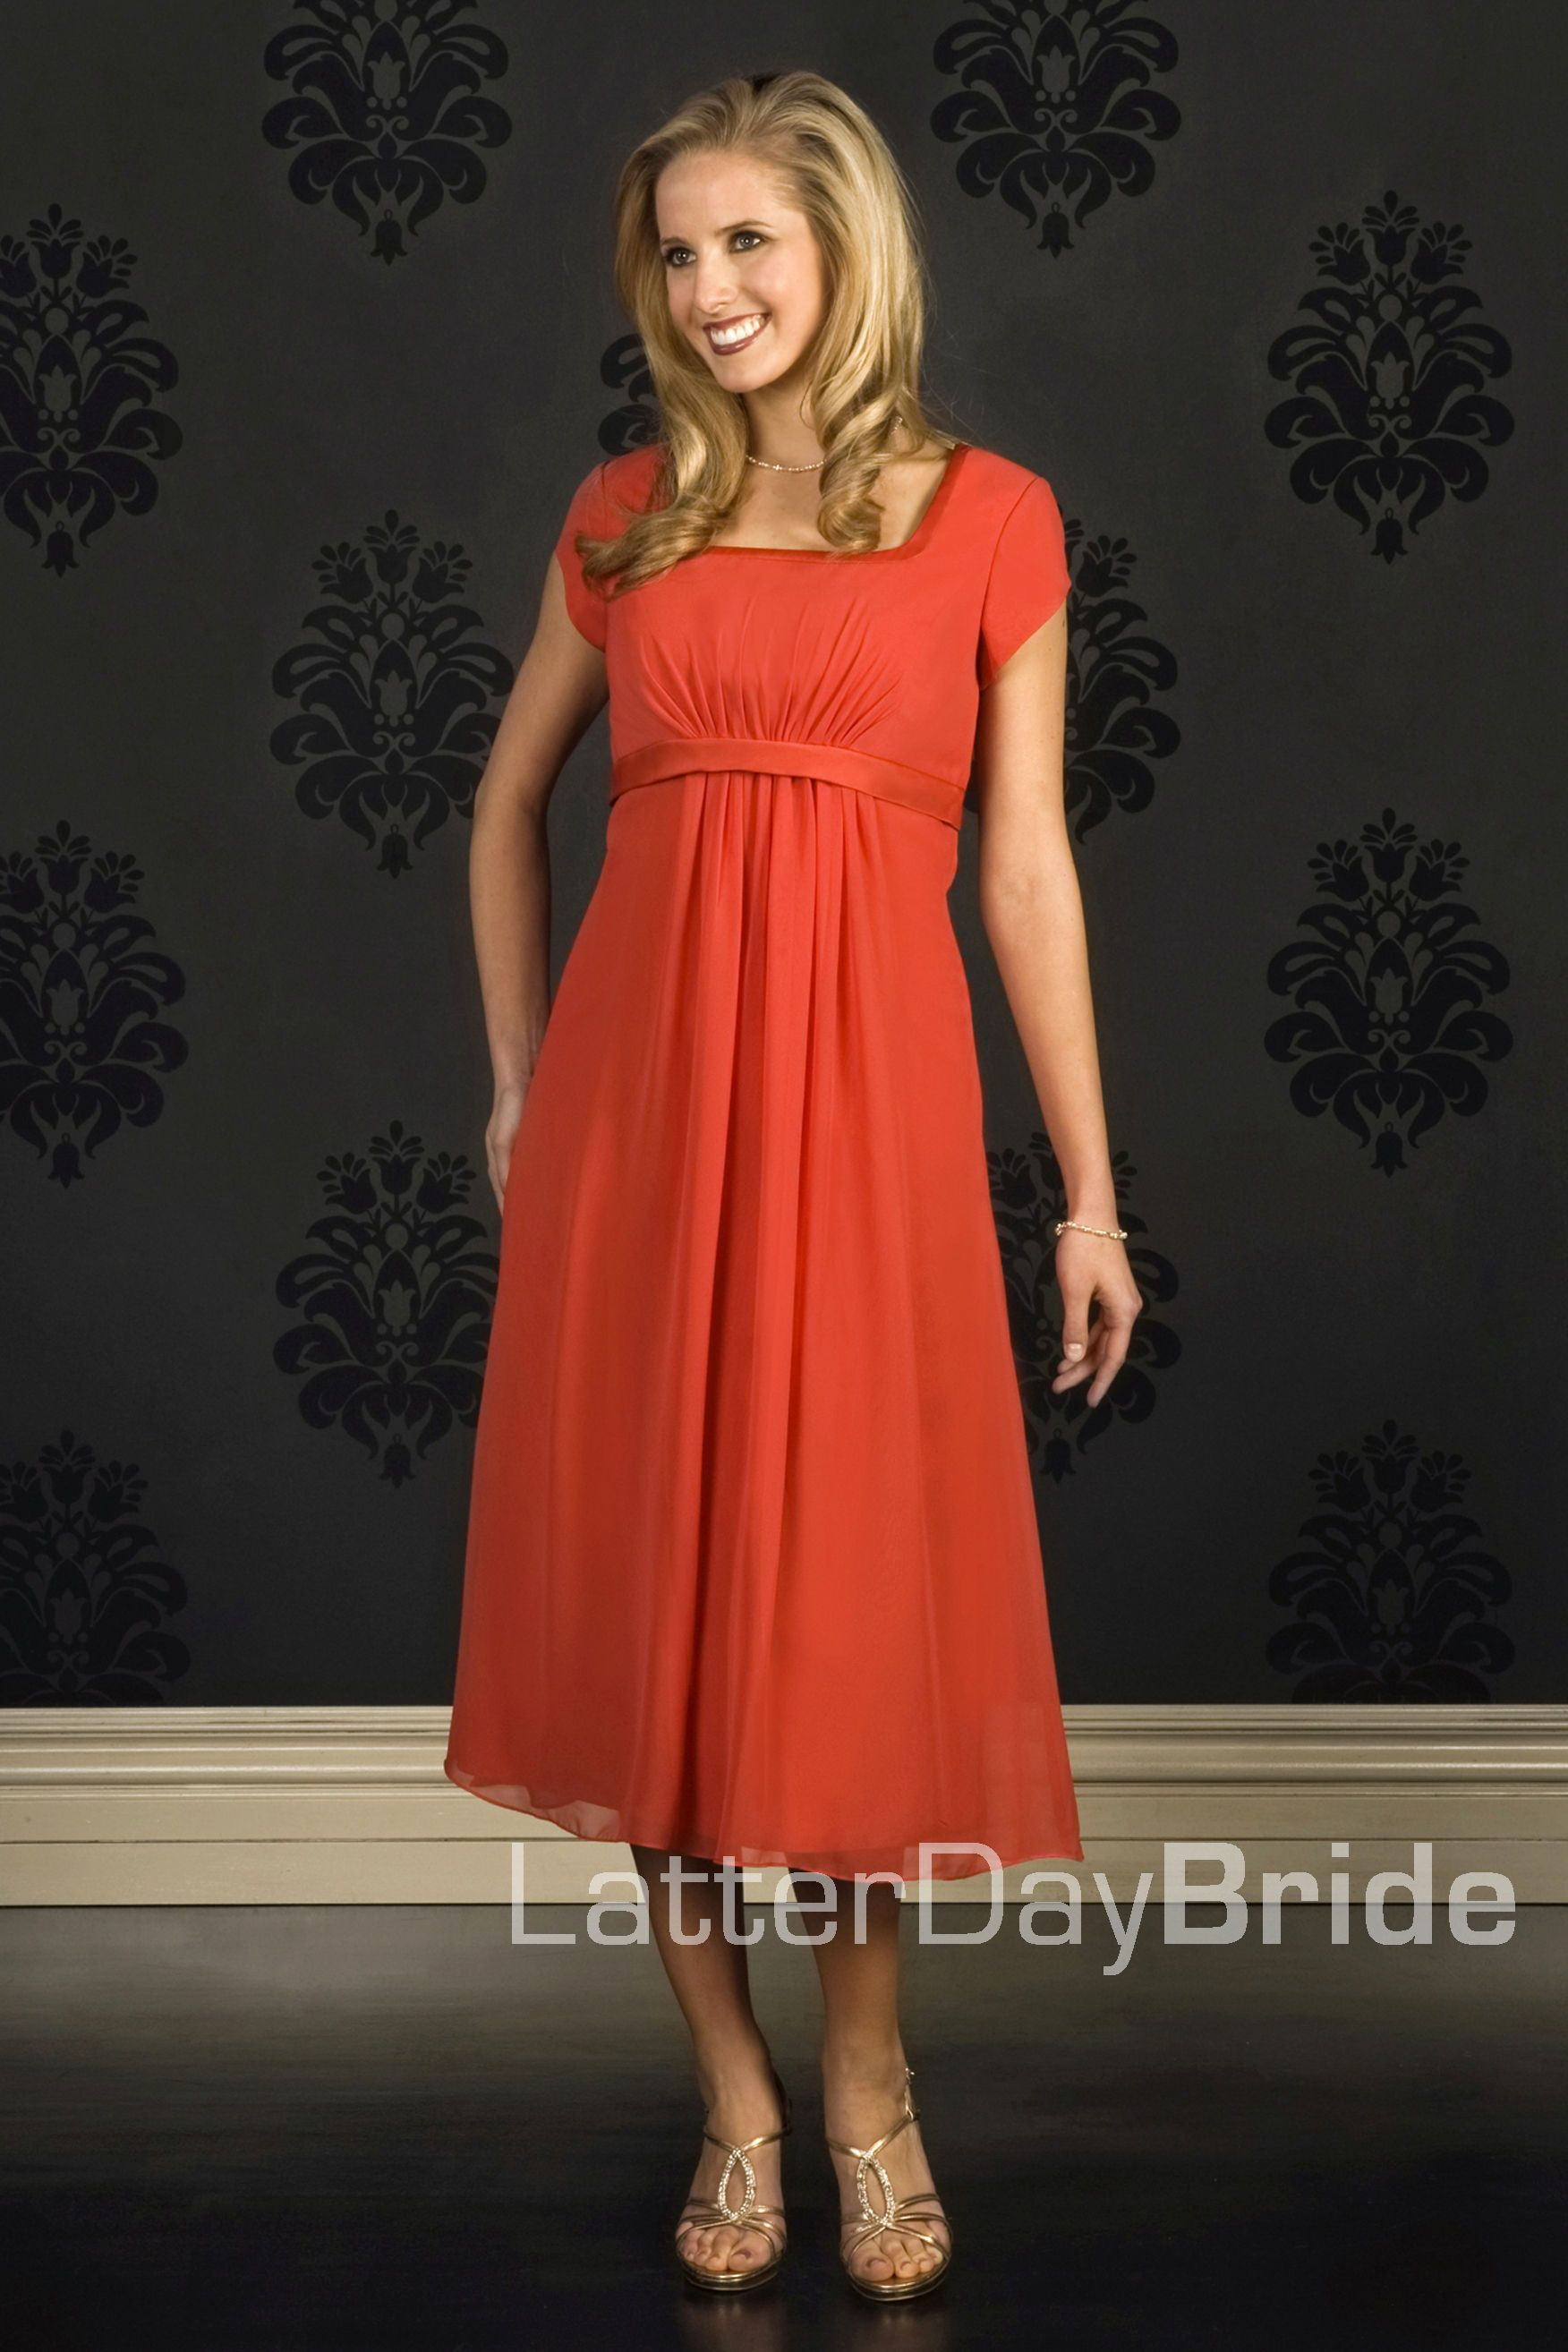 Satin maternity bridesmaid dresses choice image braidsmaid dress mango colored bridesmaid dresses images braidsmaid dress poly chiffon modest bridesmaids dress with pleated empire poly ombrellifo Image collections